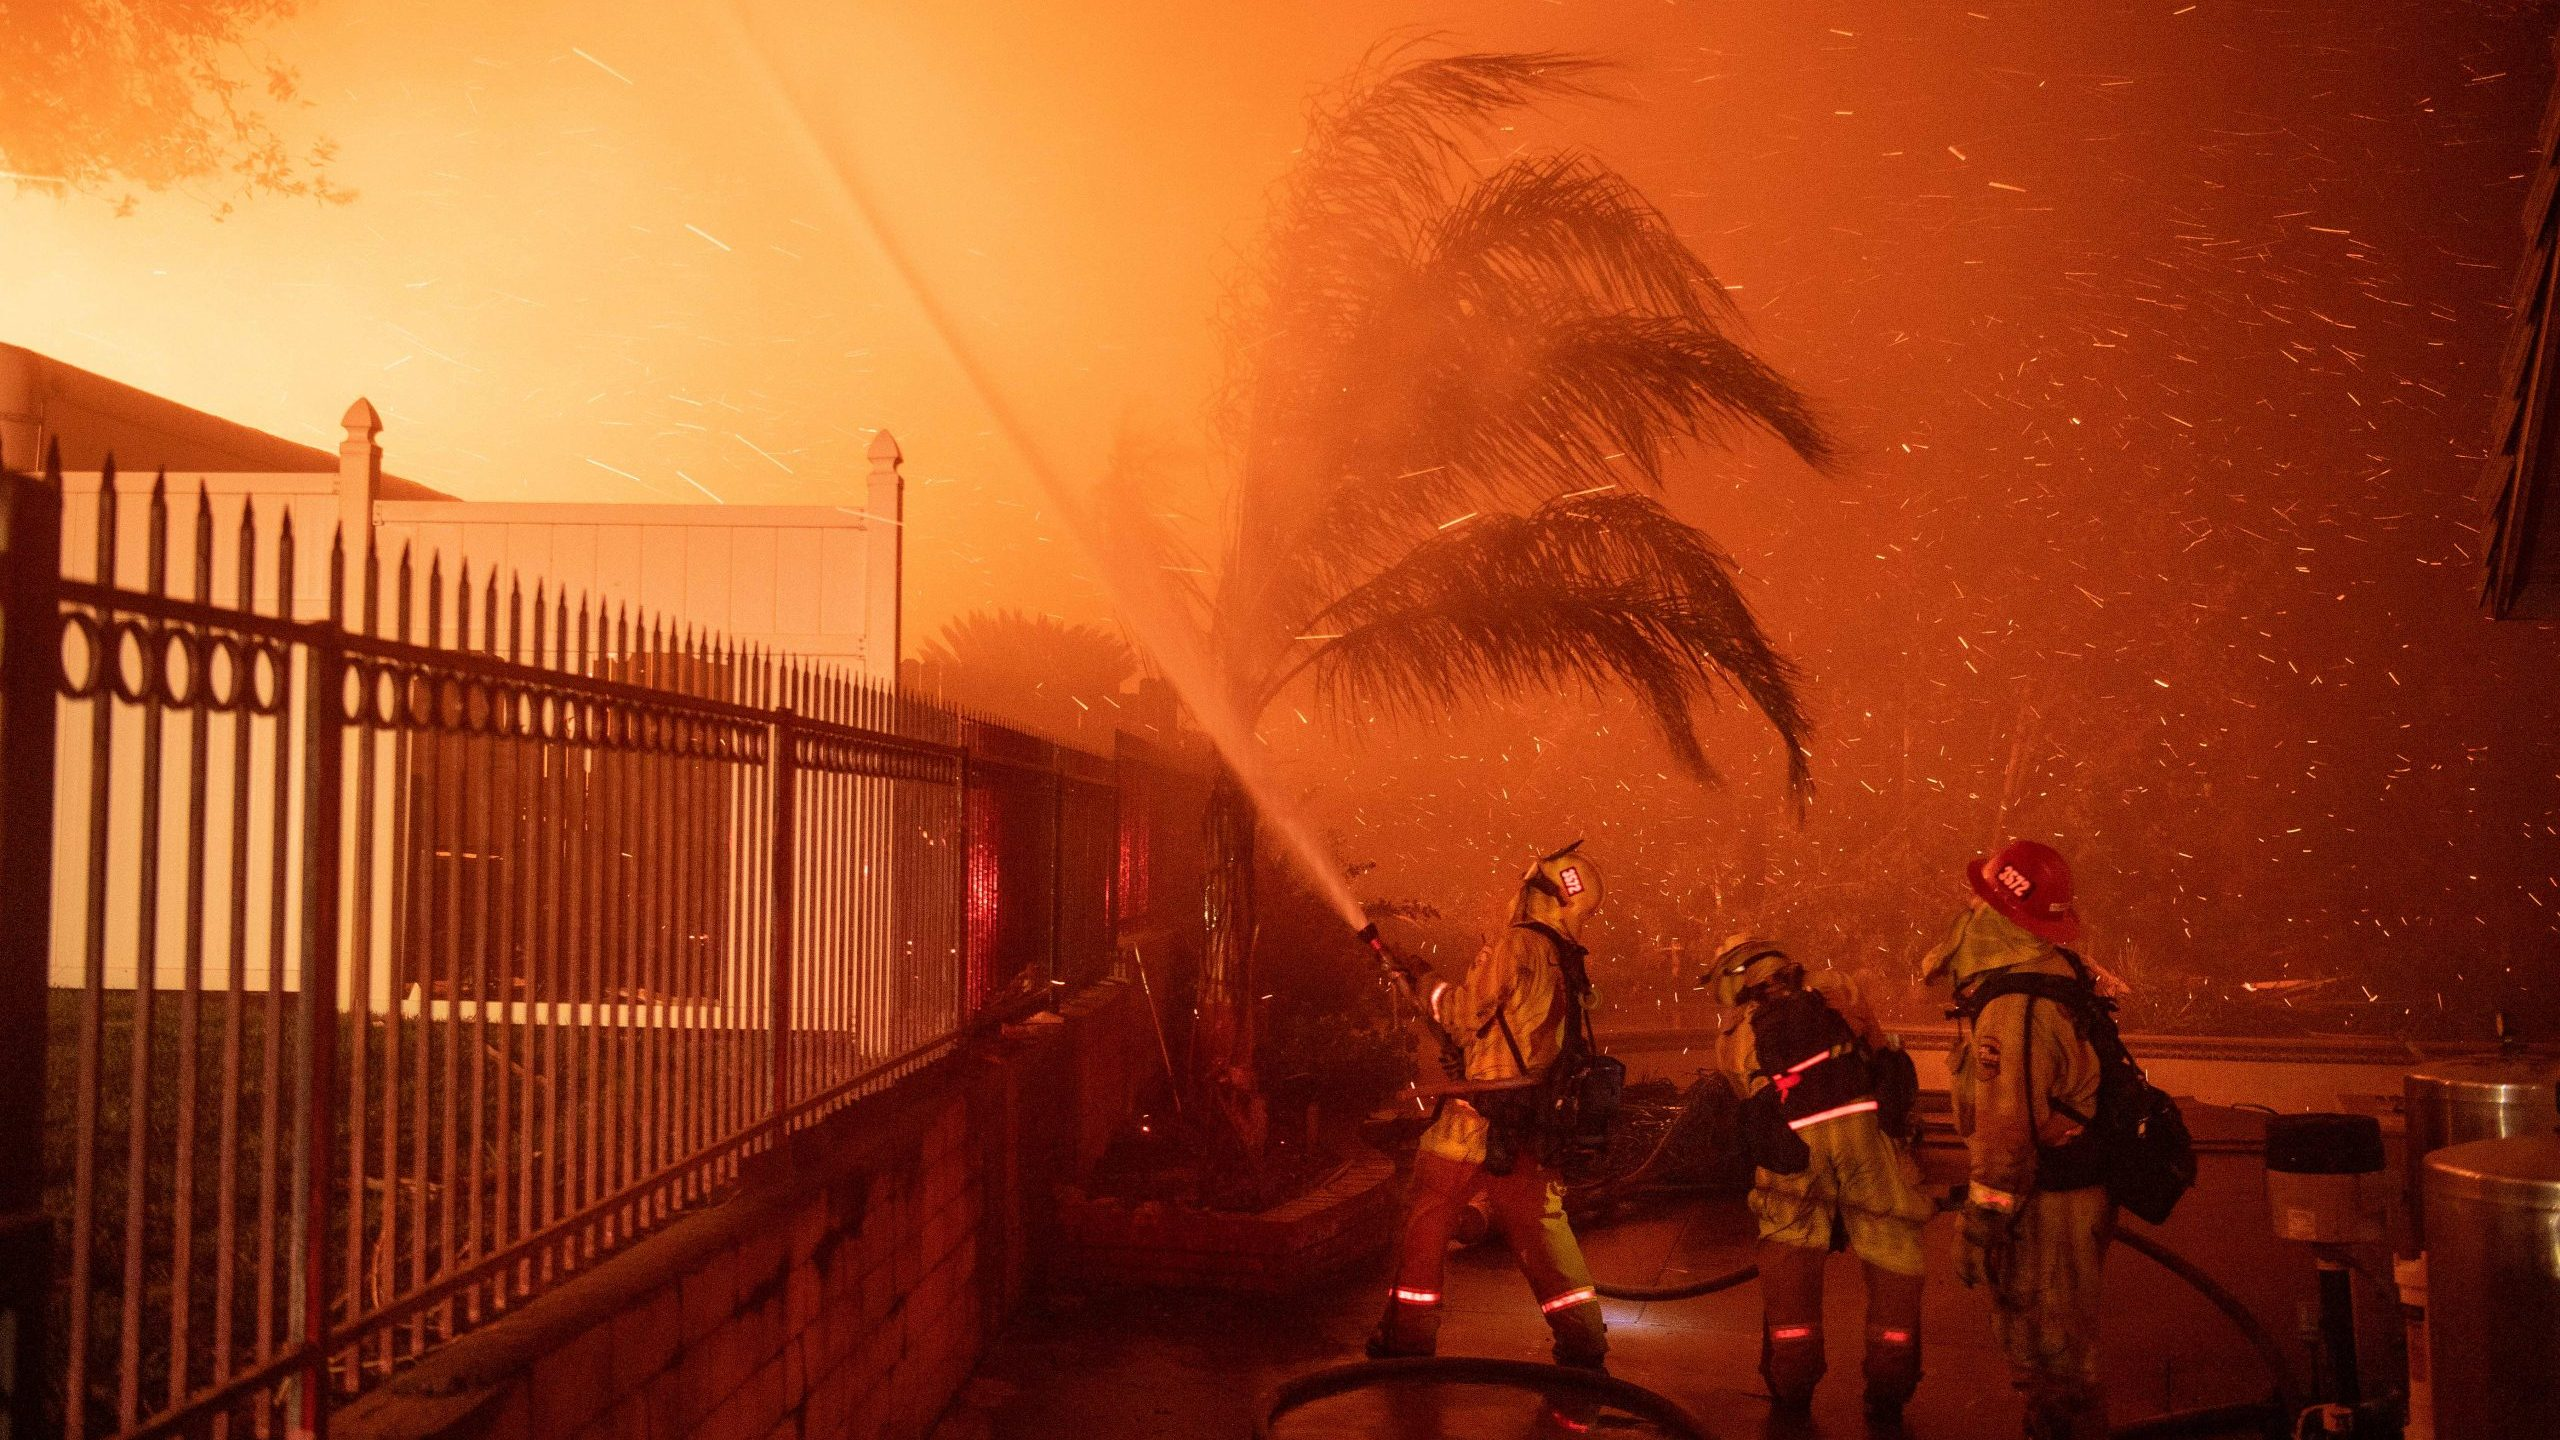 Firefighters battle wind-whipped flames engulfing multiple homes during the Hillside Fire in the North Park neighborhood of San Bernardino on Oct. 31, 2019. (Credit: Josh Edelson / AFP / Getty Images)